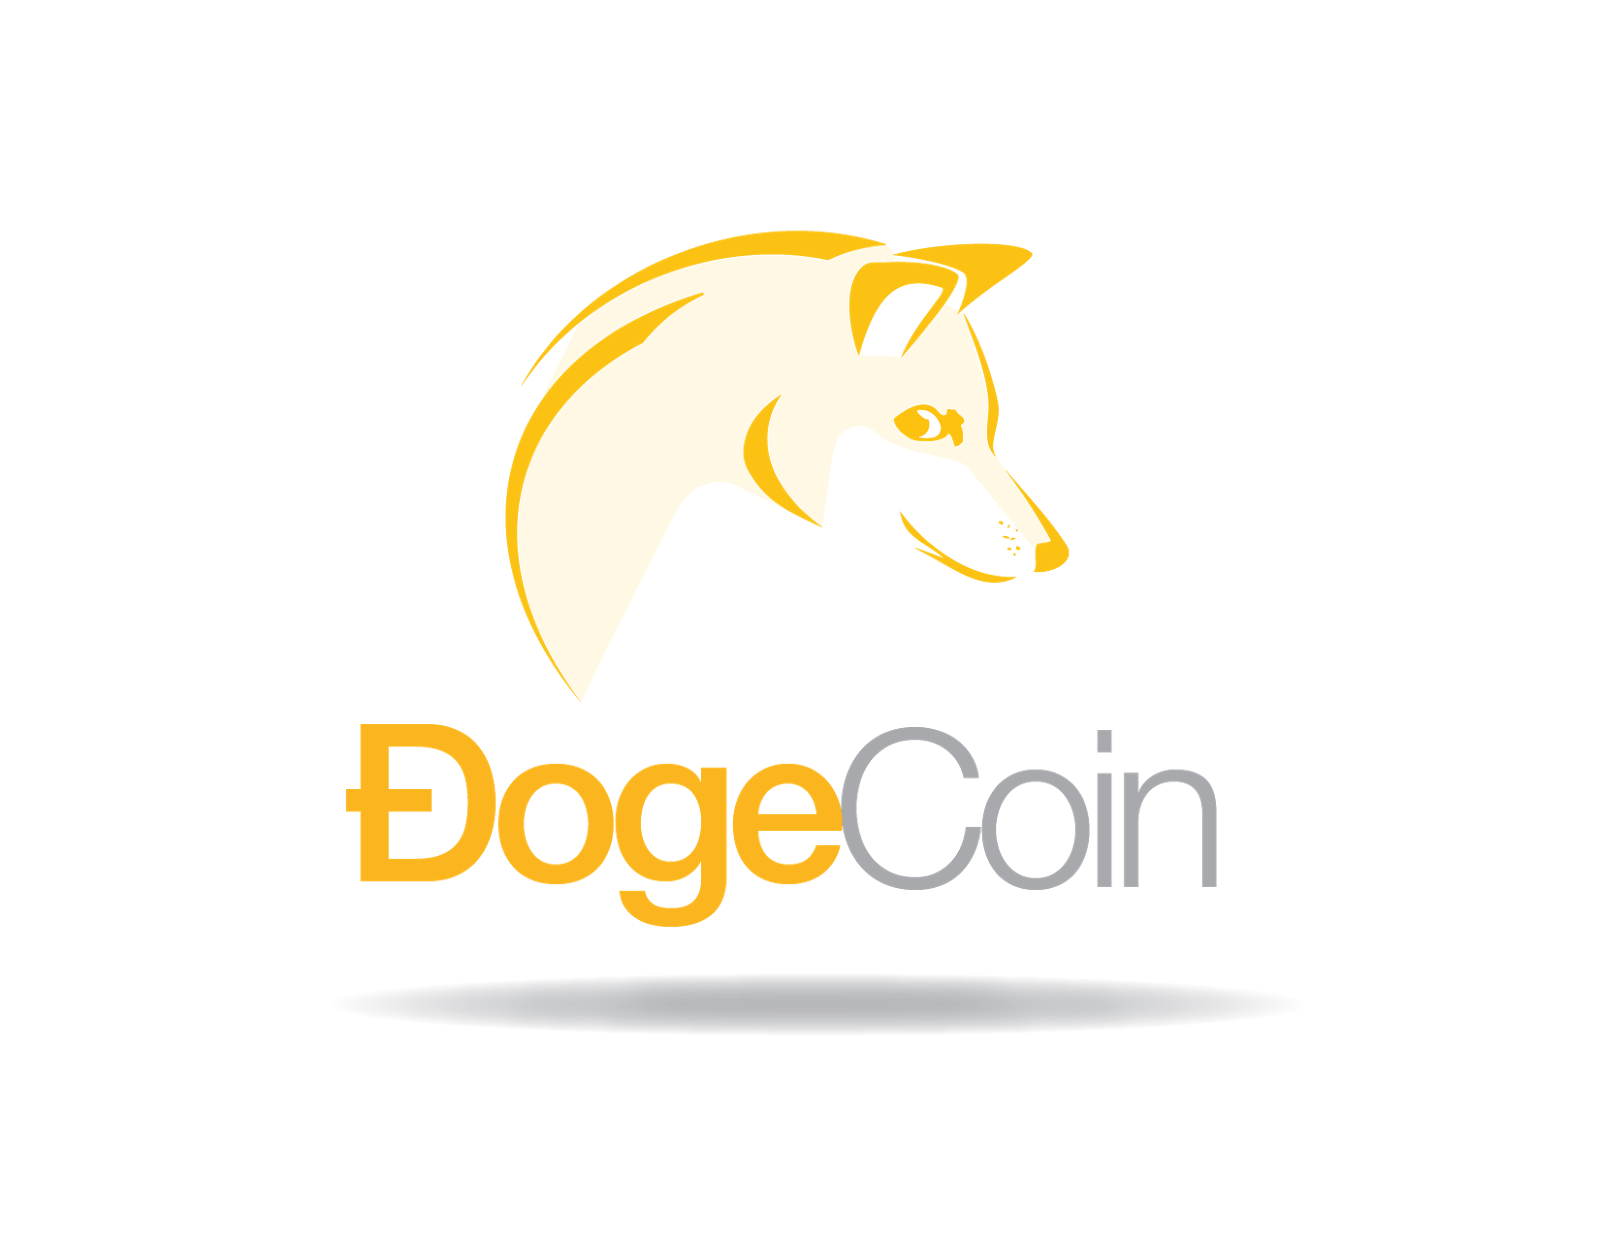 Cryptocurrency Faucet Doge Dogecoin Bitcoin Download HQ PNG PNG Image